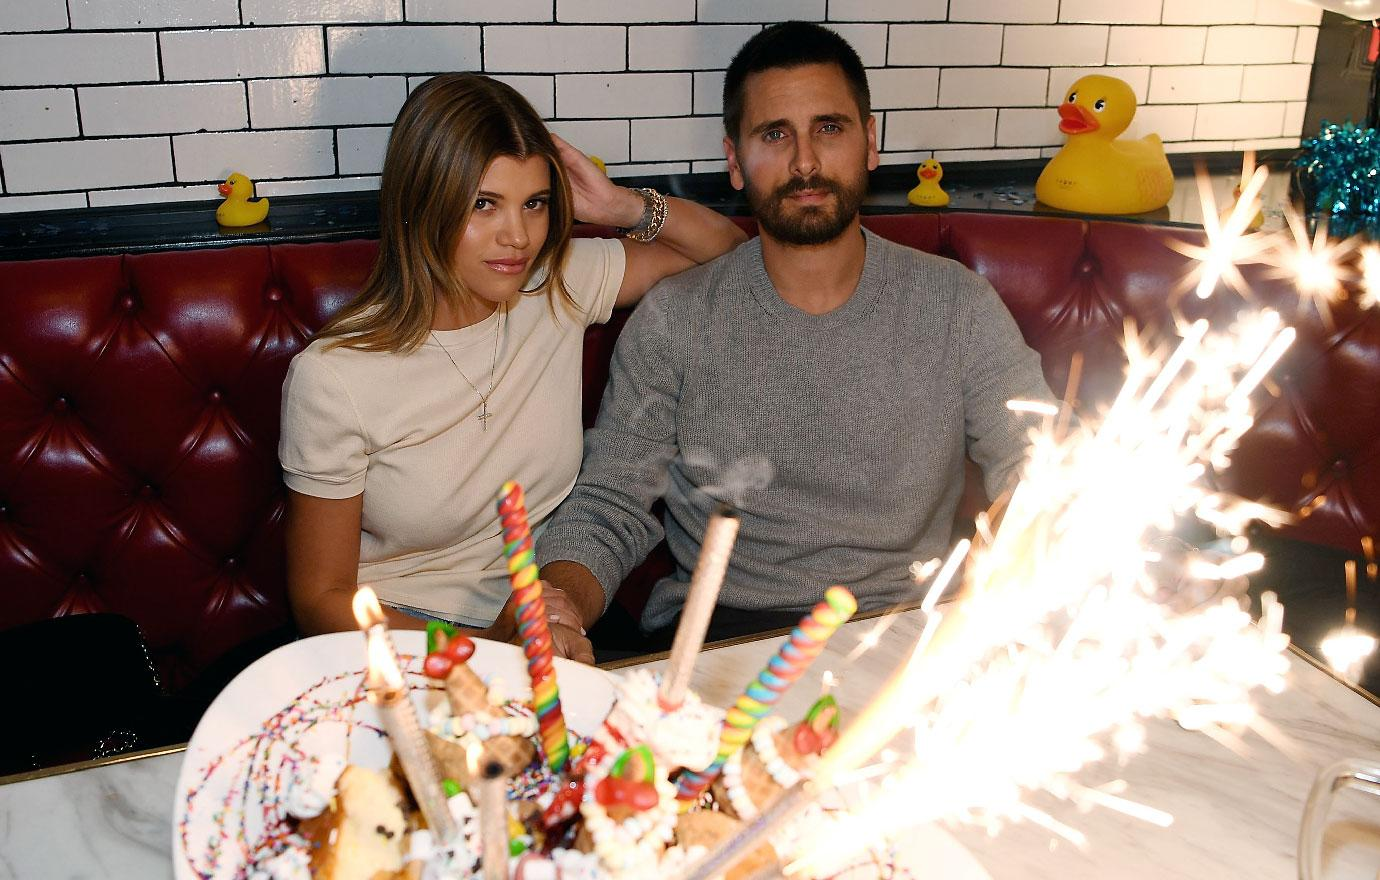 Scott Disick And Sofia Richie Have Dinner In Las Vegas Sugar Factory